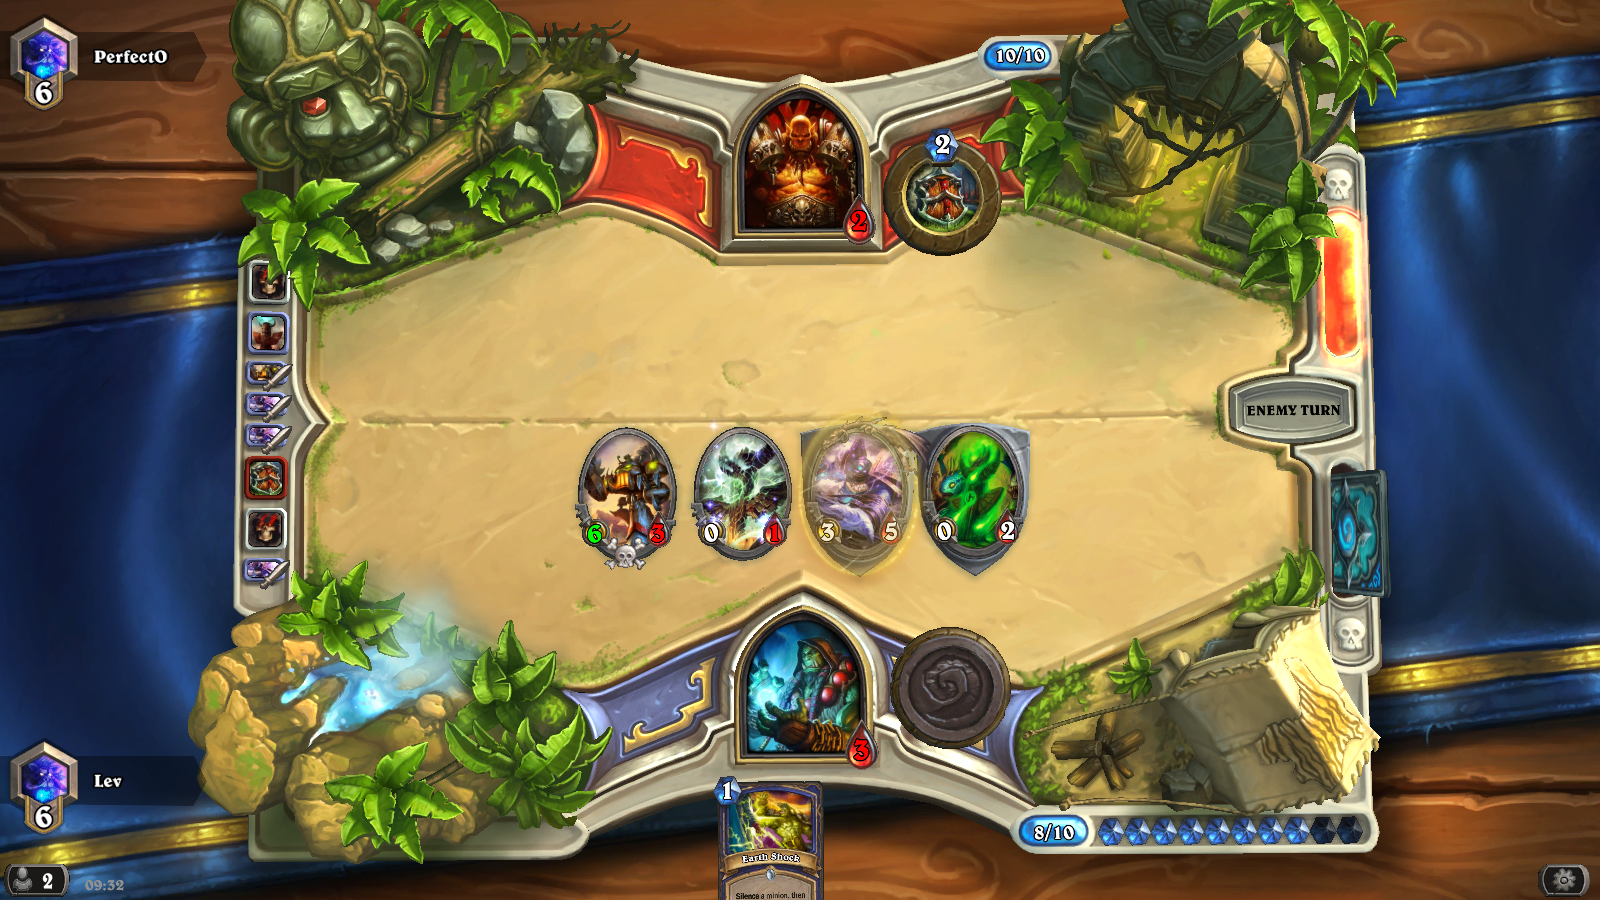 hearthstone_screenshoijlyw.png